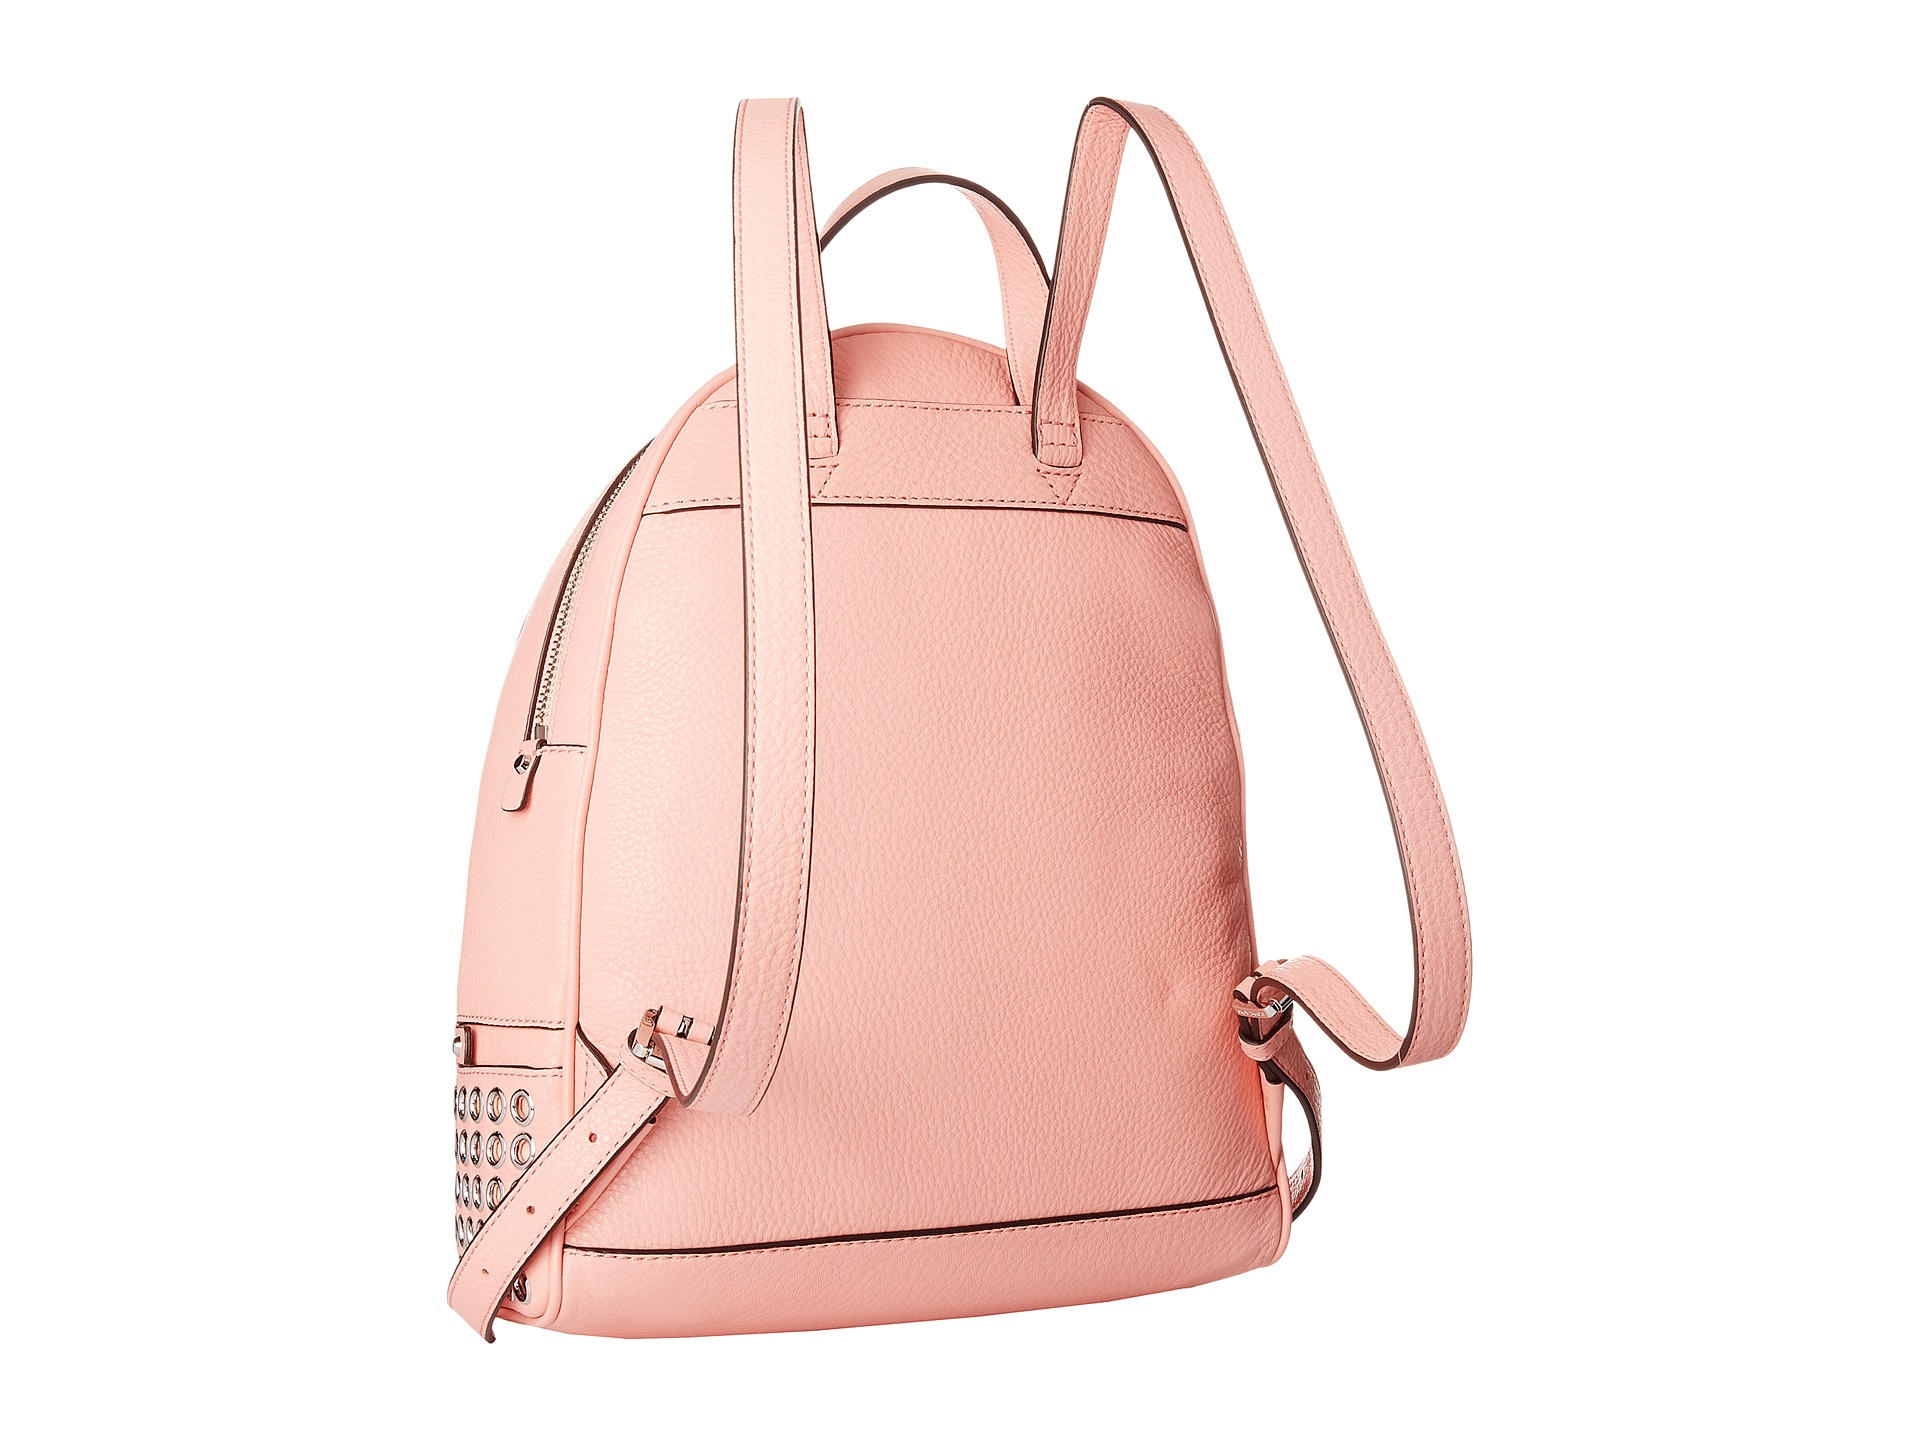 8d796880baa4 michael kors rhea zip medium grommet backpack outlet online application